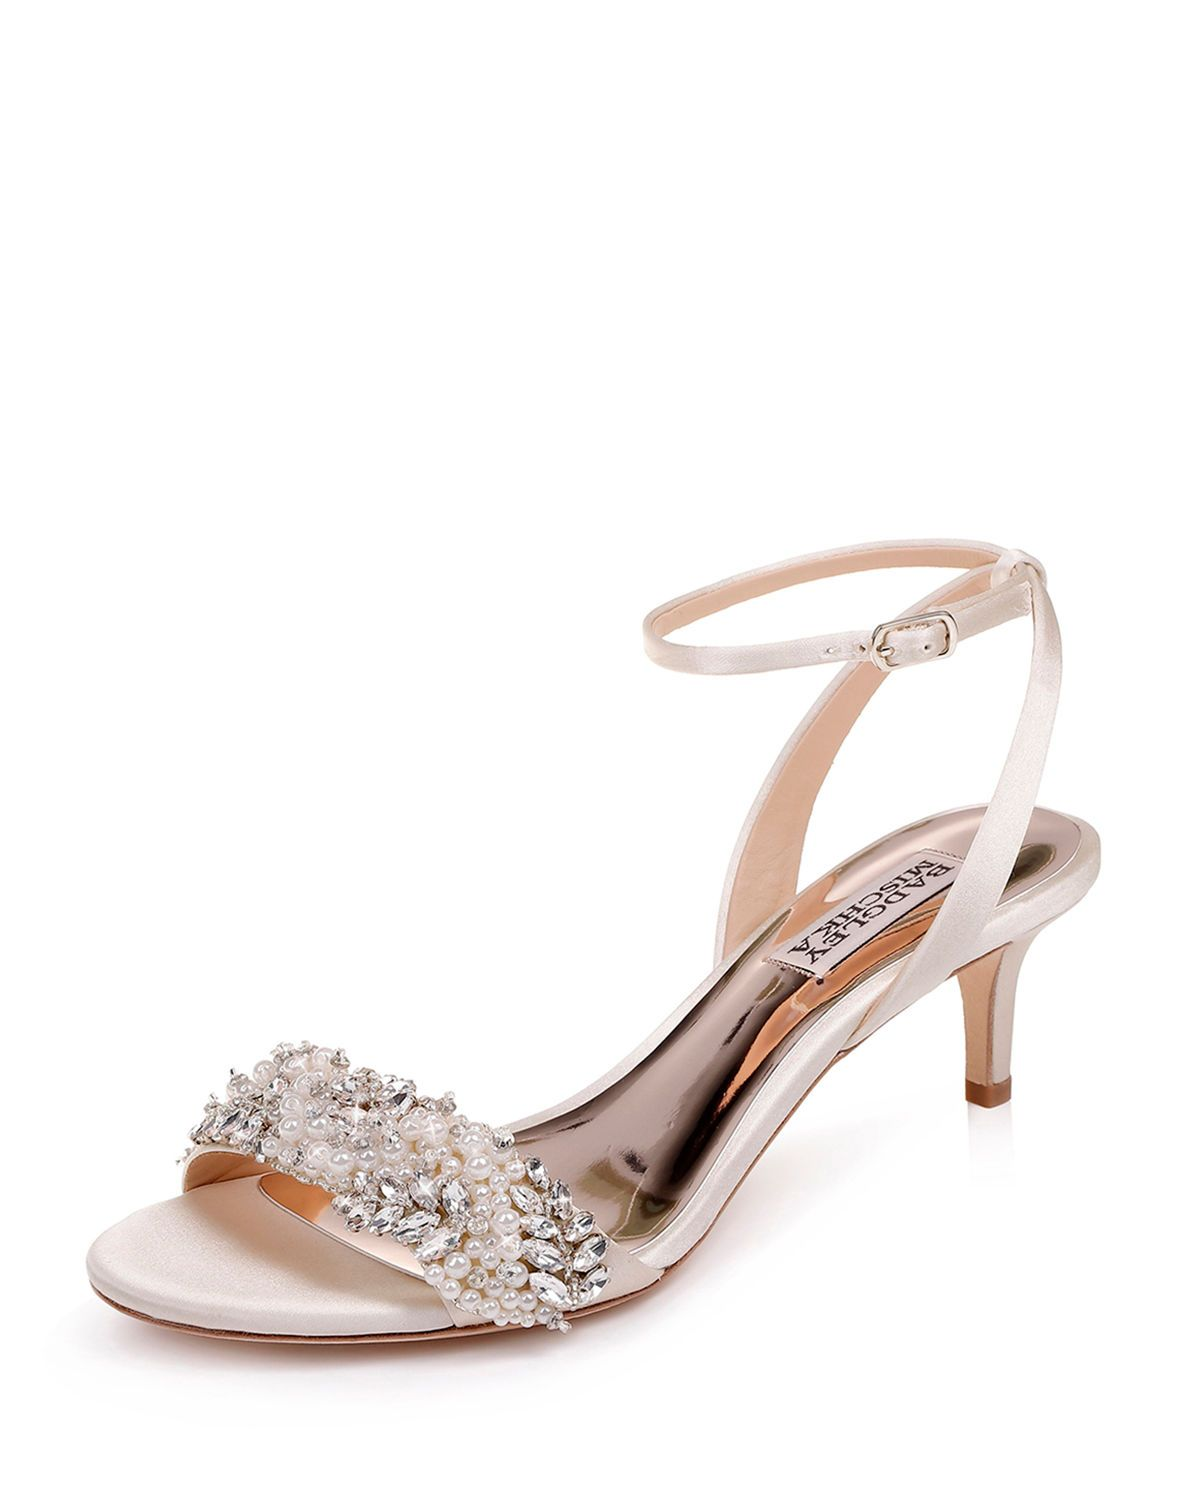 Badgley Mischka Fiona Embellished Satin Kitten Heel Sandals Bridal Shoes Low Heel Badgley Mischka Shoes Wedding Wedding Shoes Heels